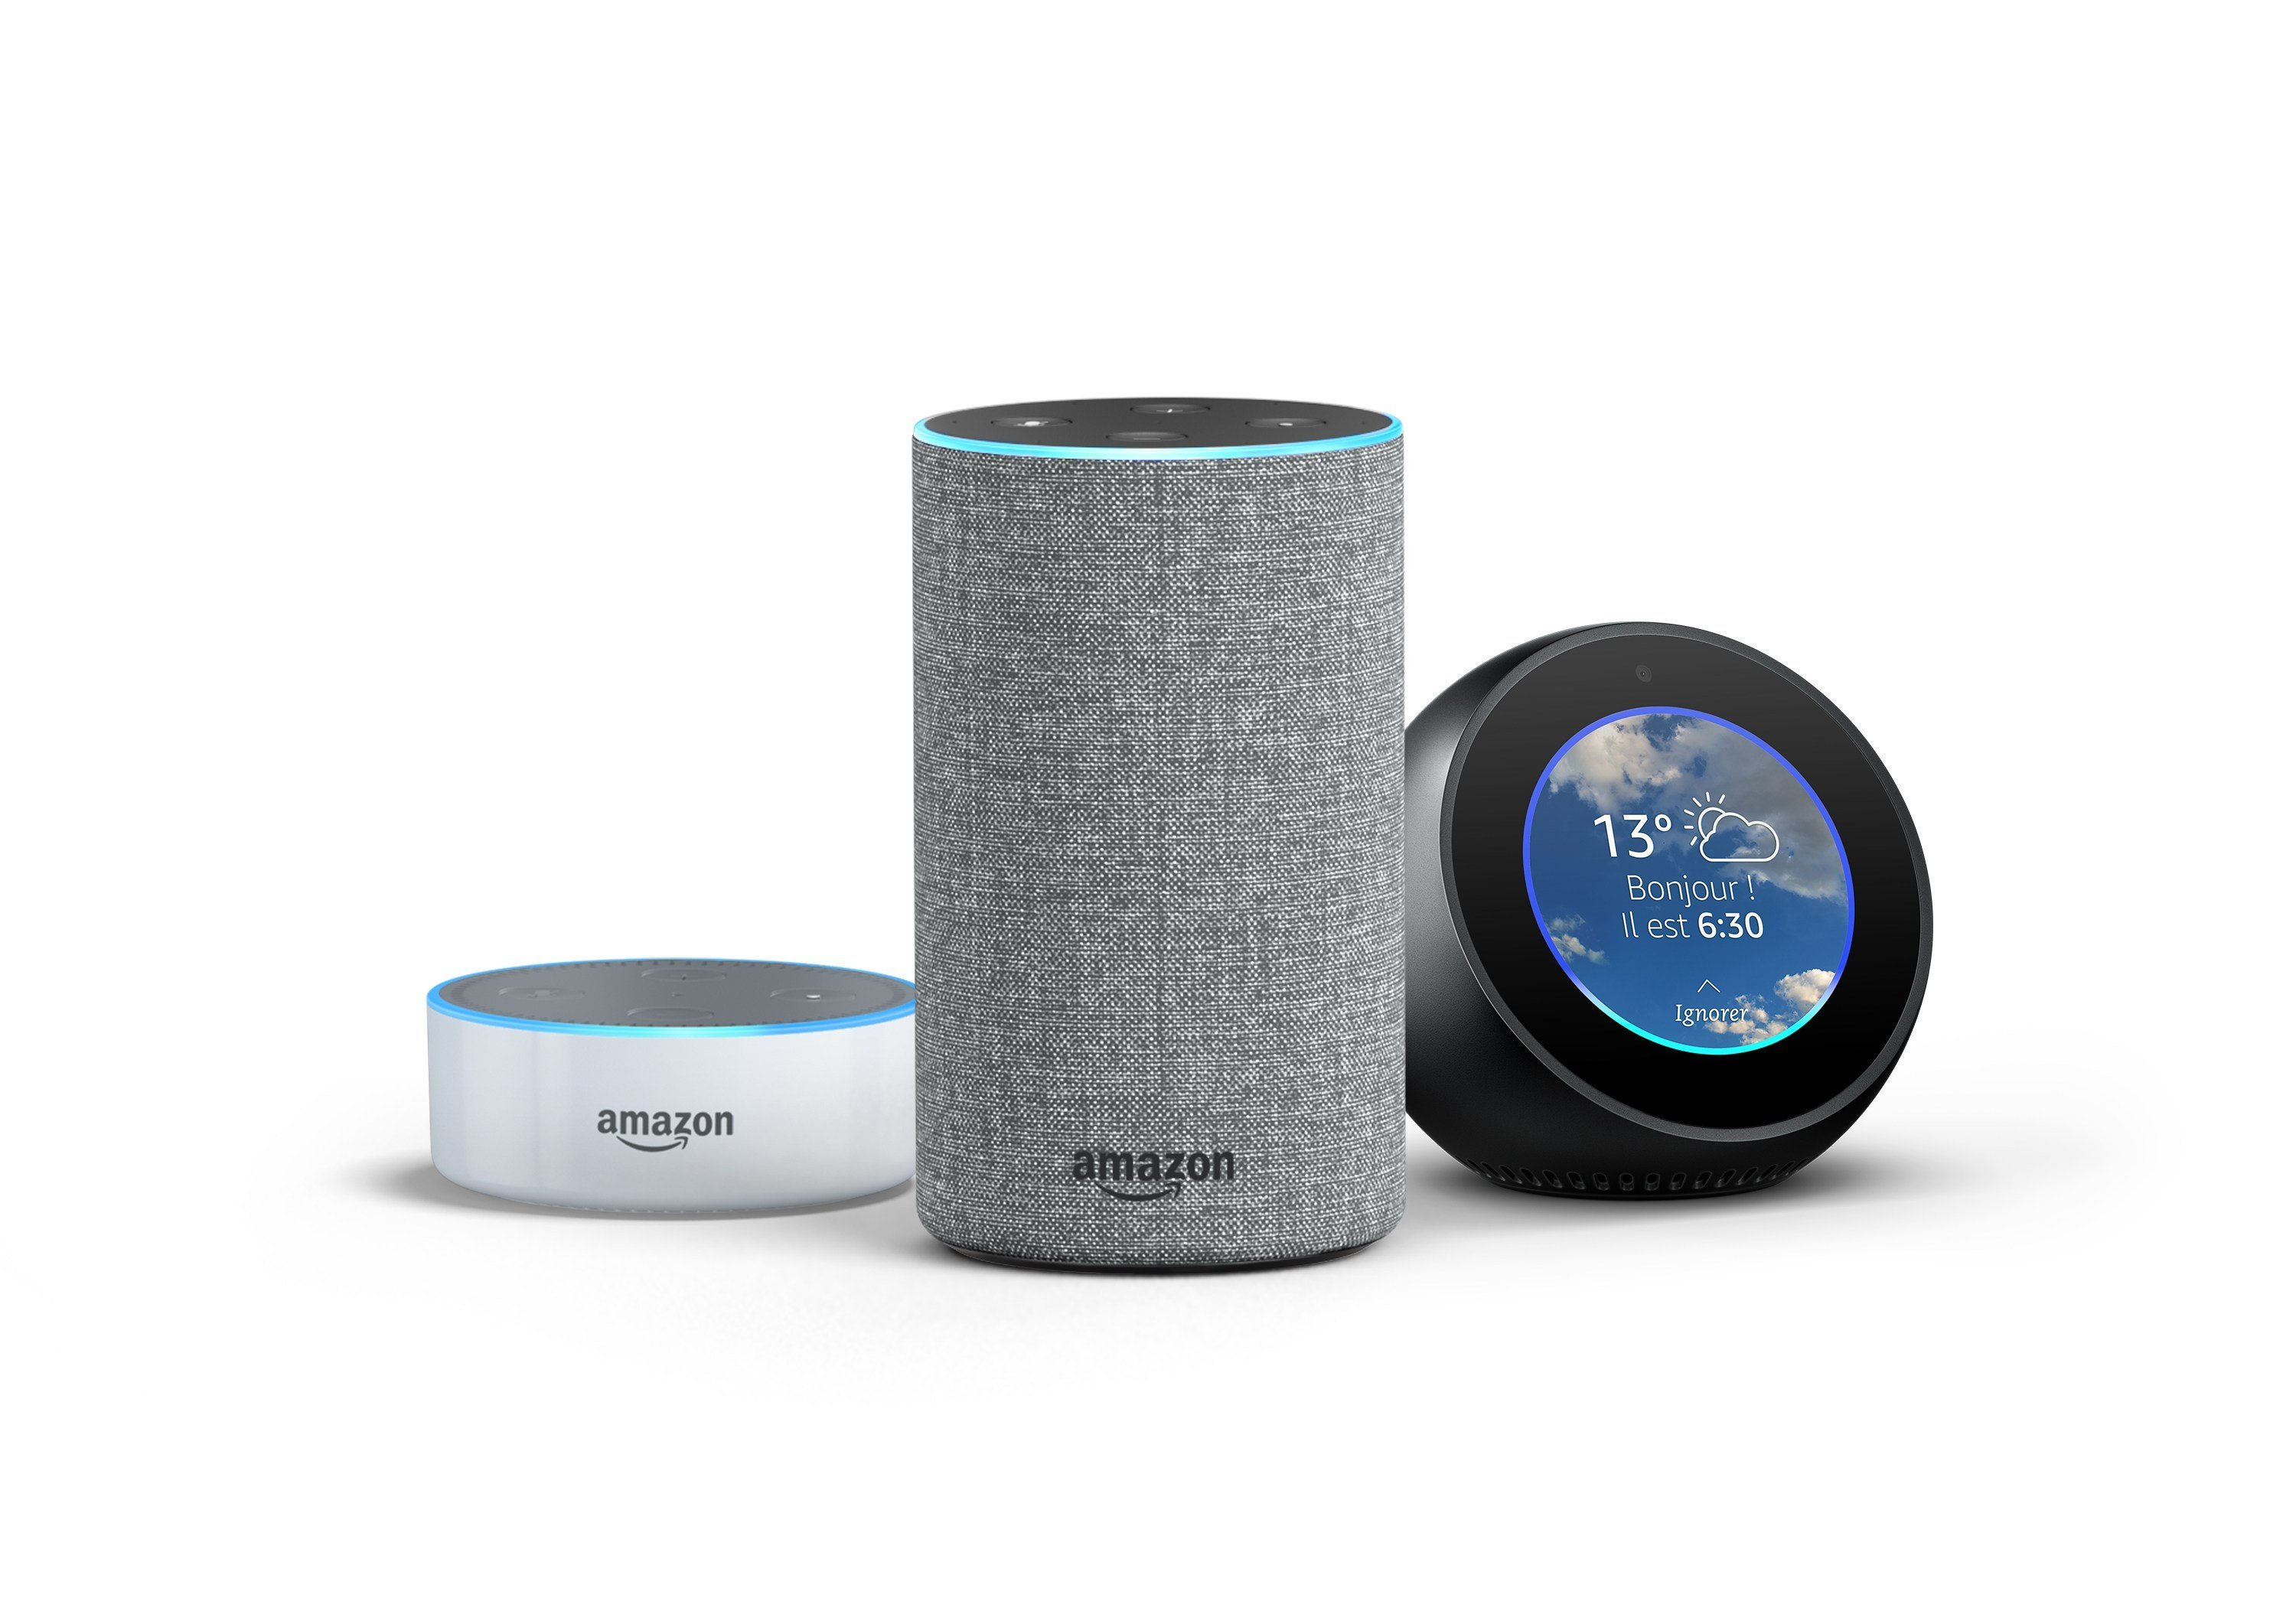 Exclu – Amazon Echo Dot 3e gen : des images du « Donut » embarquant Alexa